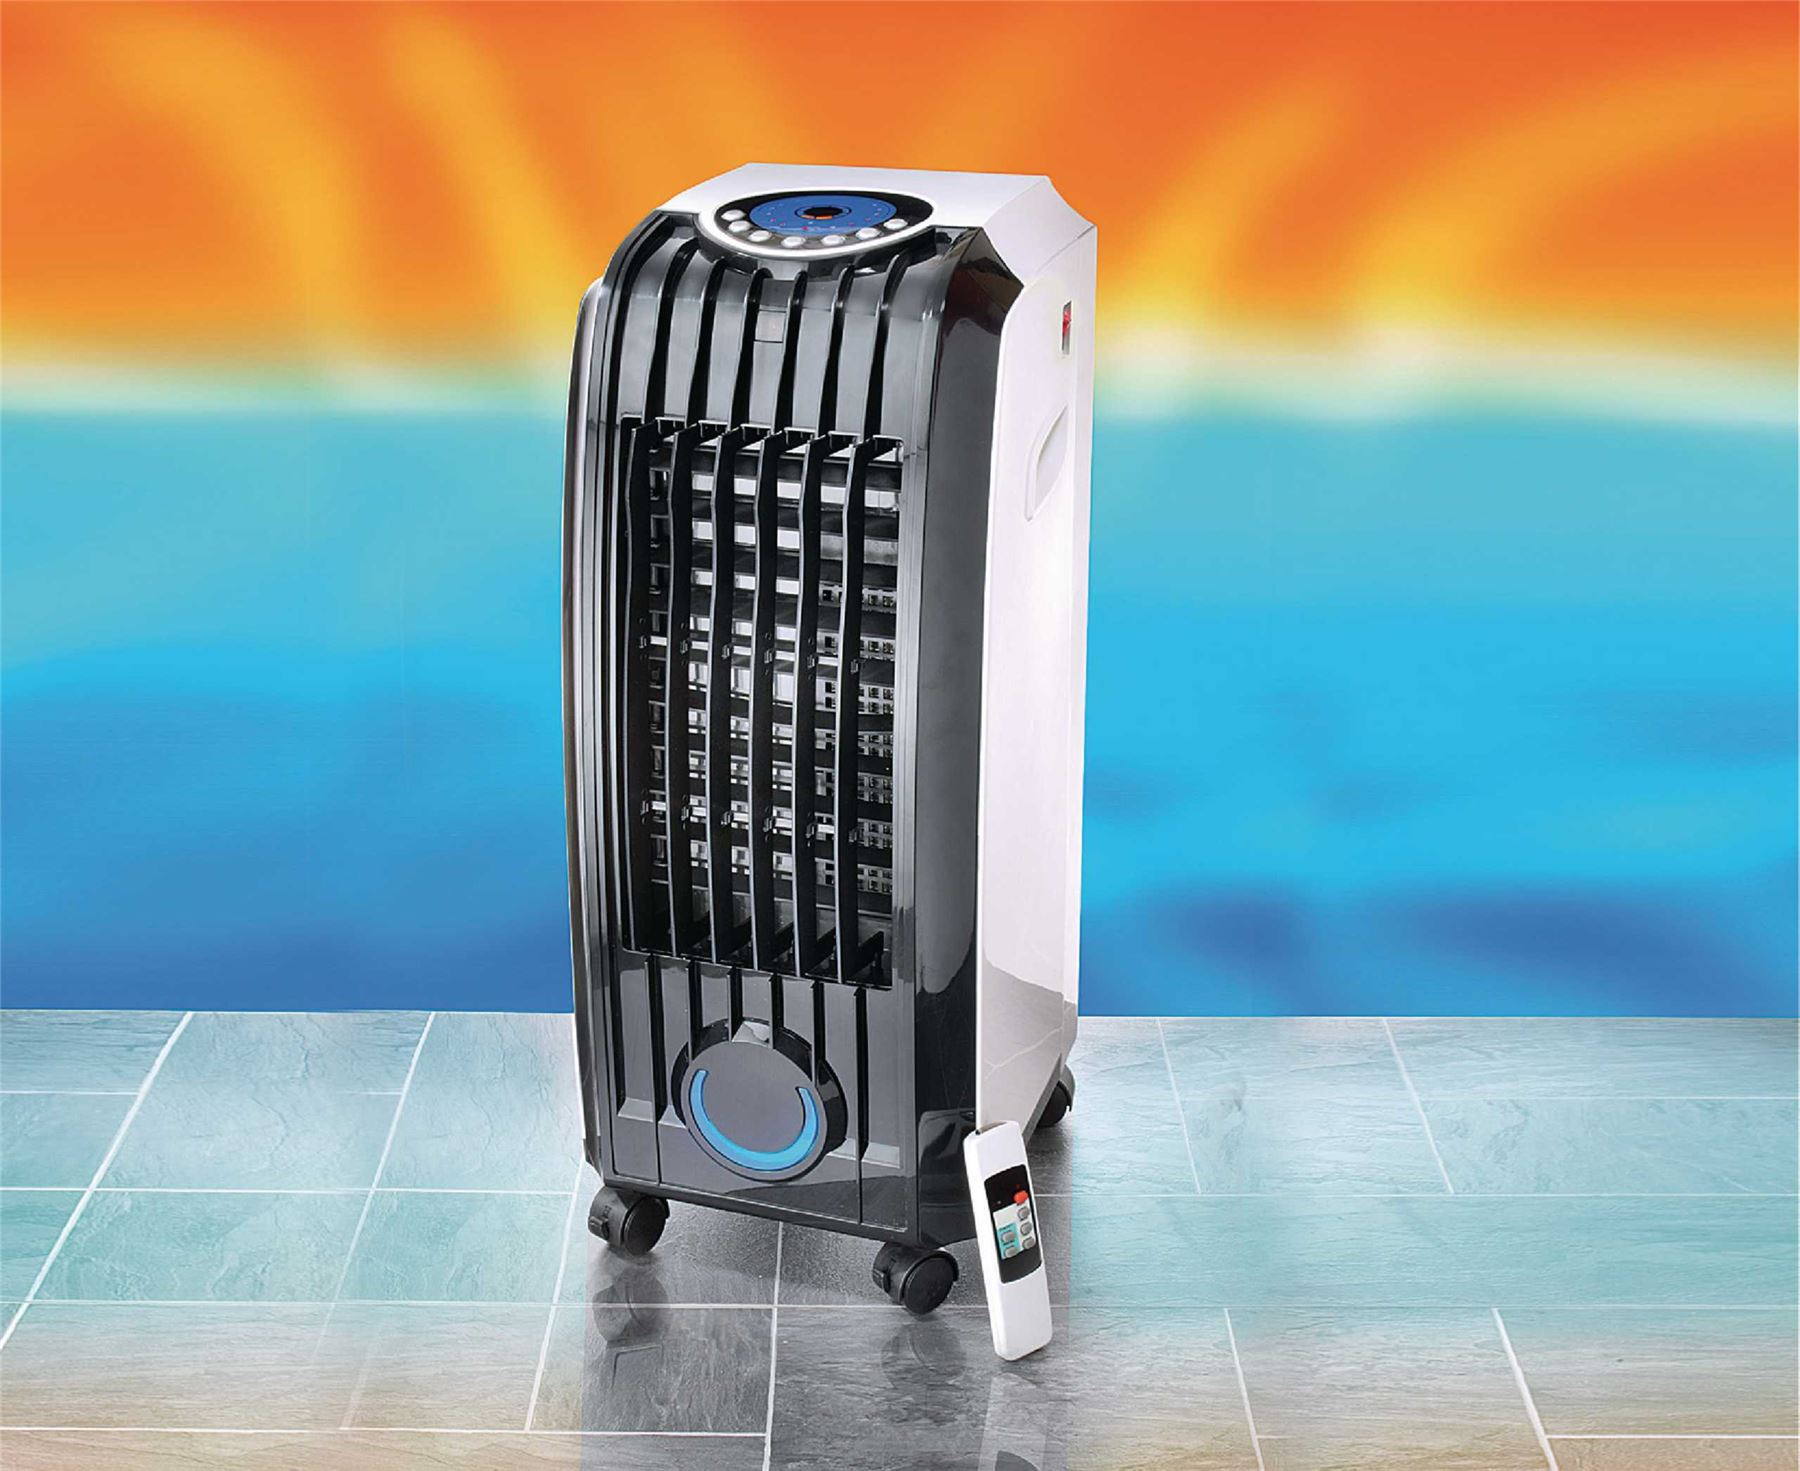 Neostar Evaporative Air Cooler Conditioner Tower Fan. Marketing For Insurance Agents. Otoplasty Plastic Surgery Charter Mobile Apps. Louisiana Student Loans U Verse Internet Slow. Window World Lincoln Ne Tallahassee Law Firms. Carpet Cleaning Carrollton Call Forward Code. Associate Registered Nurse Salary. Mega Life Insurance Company 500 Abarth Specs. Technical Schools In Wv Meaning Of Motivation